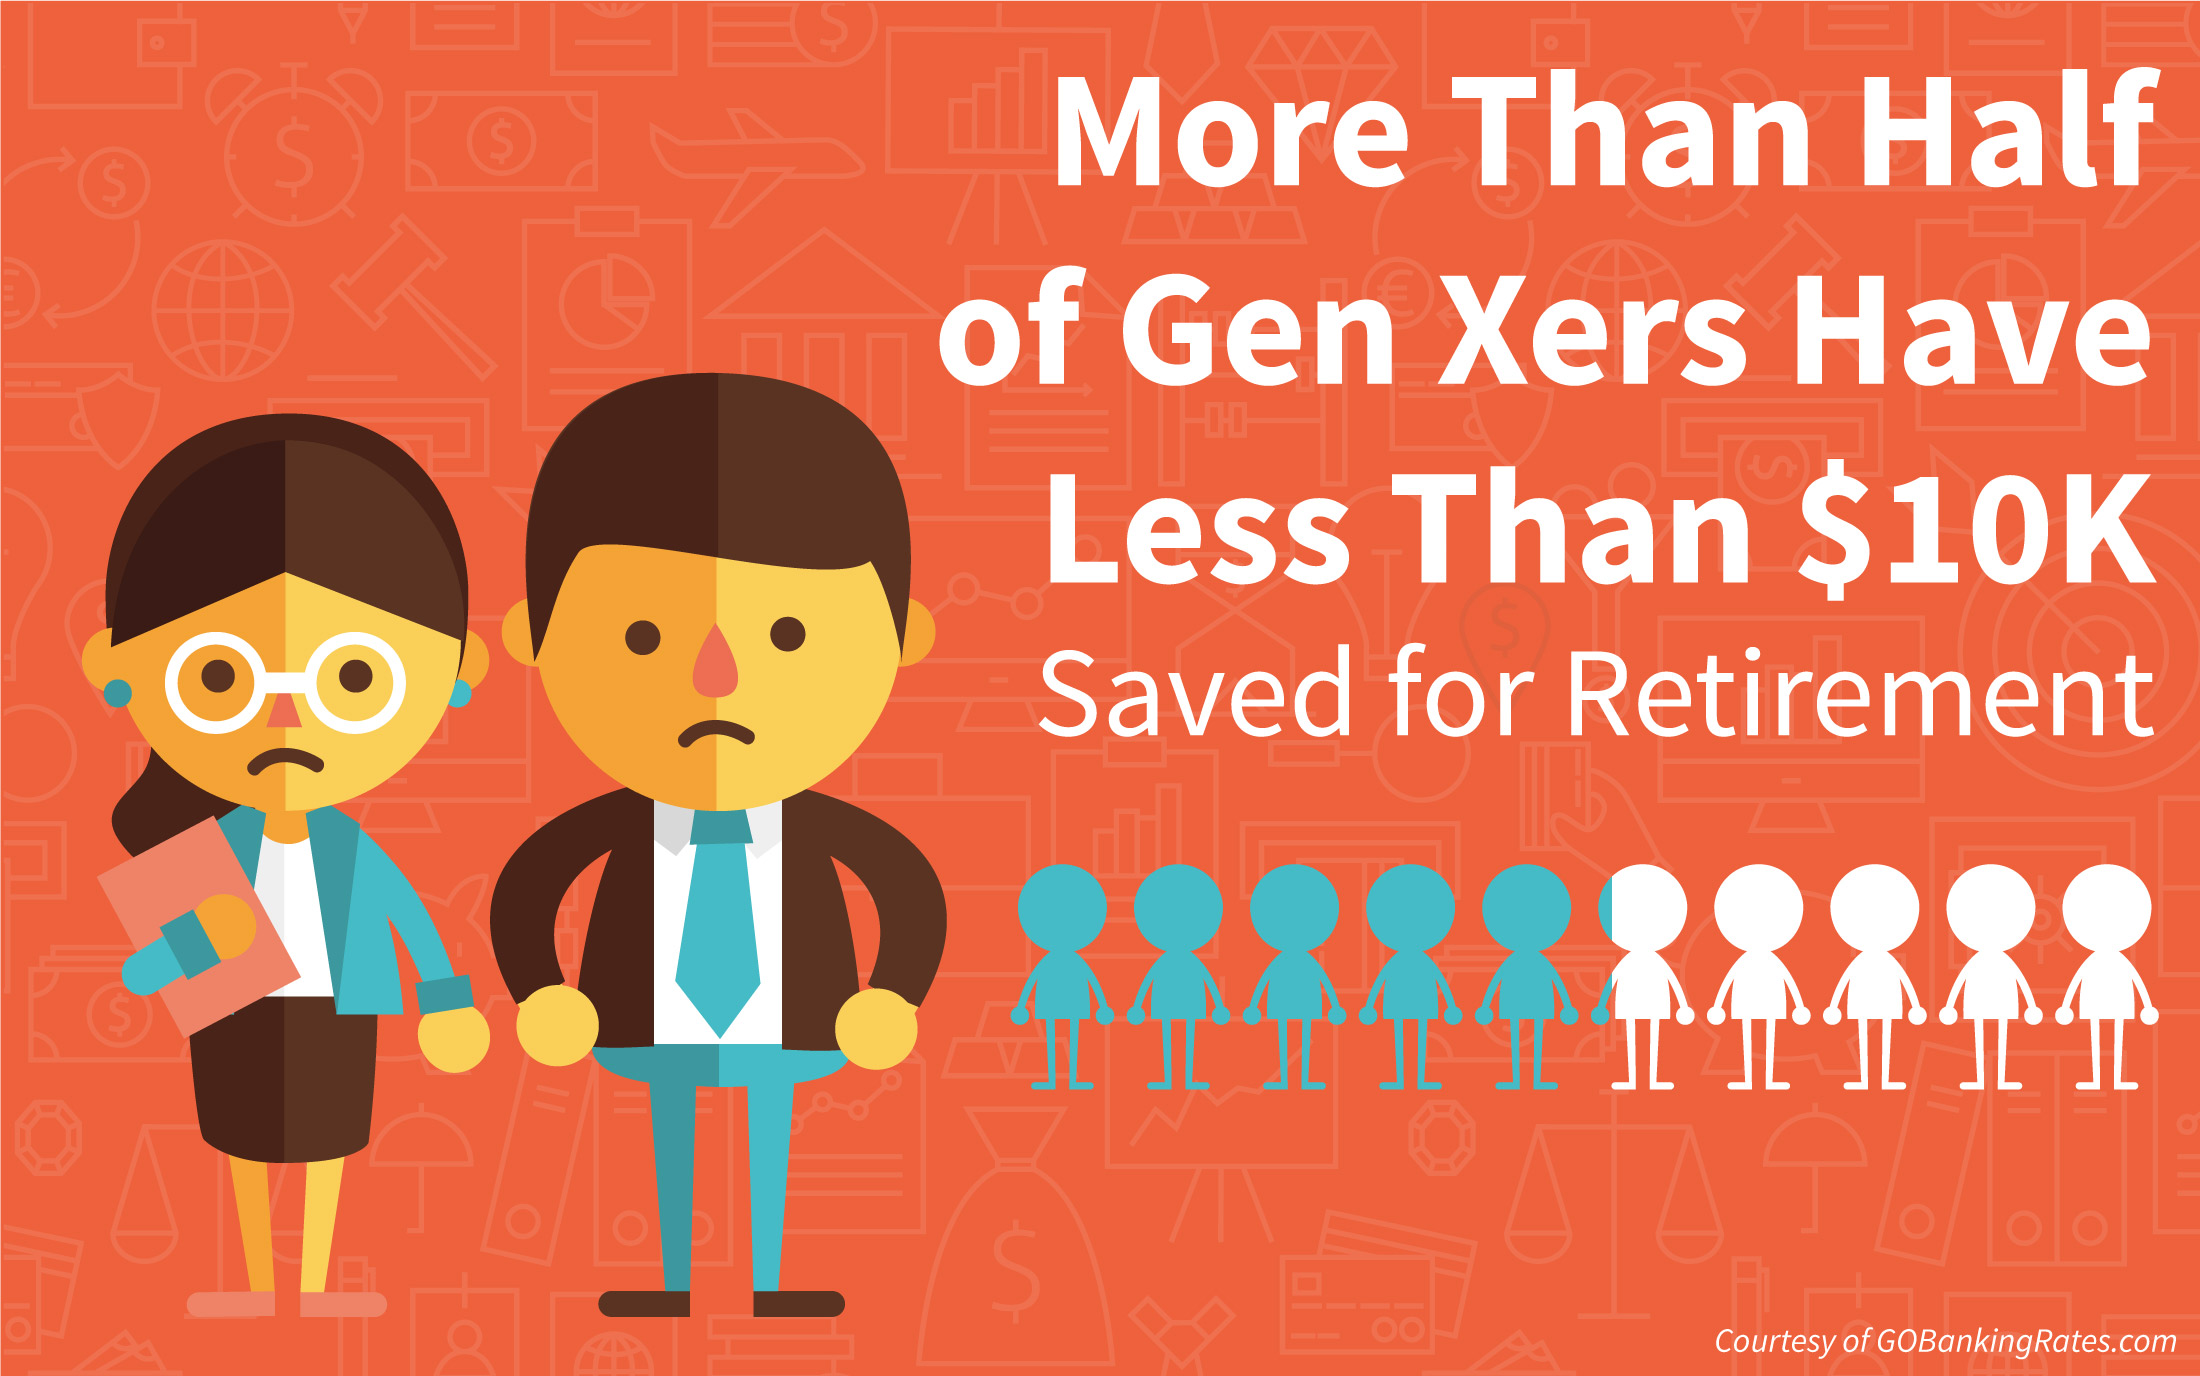 Survey: Most Gen Xers Are Behind on Retirement Savings